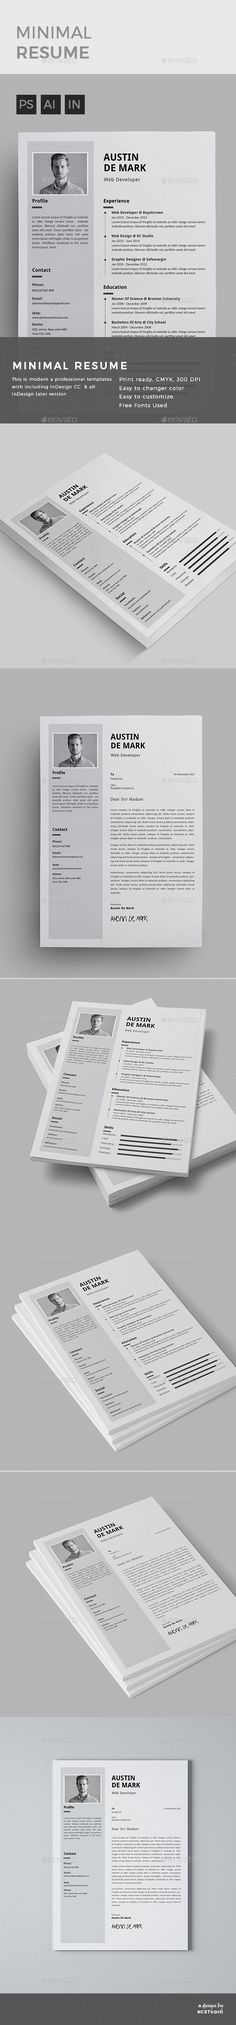 Illustrator Resume Templates Modern Infographic Resume  Cv Template Psd Ai Illustrator